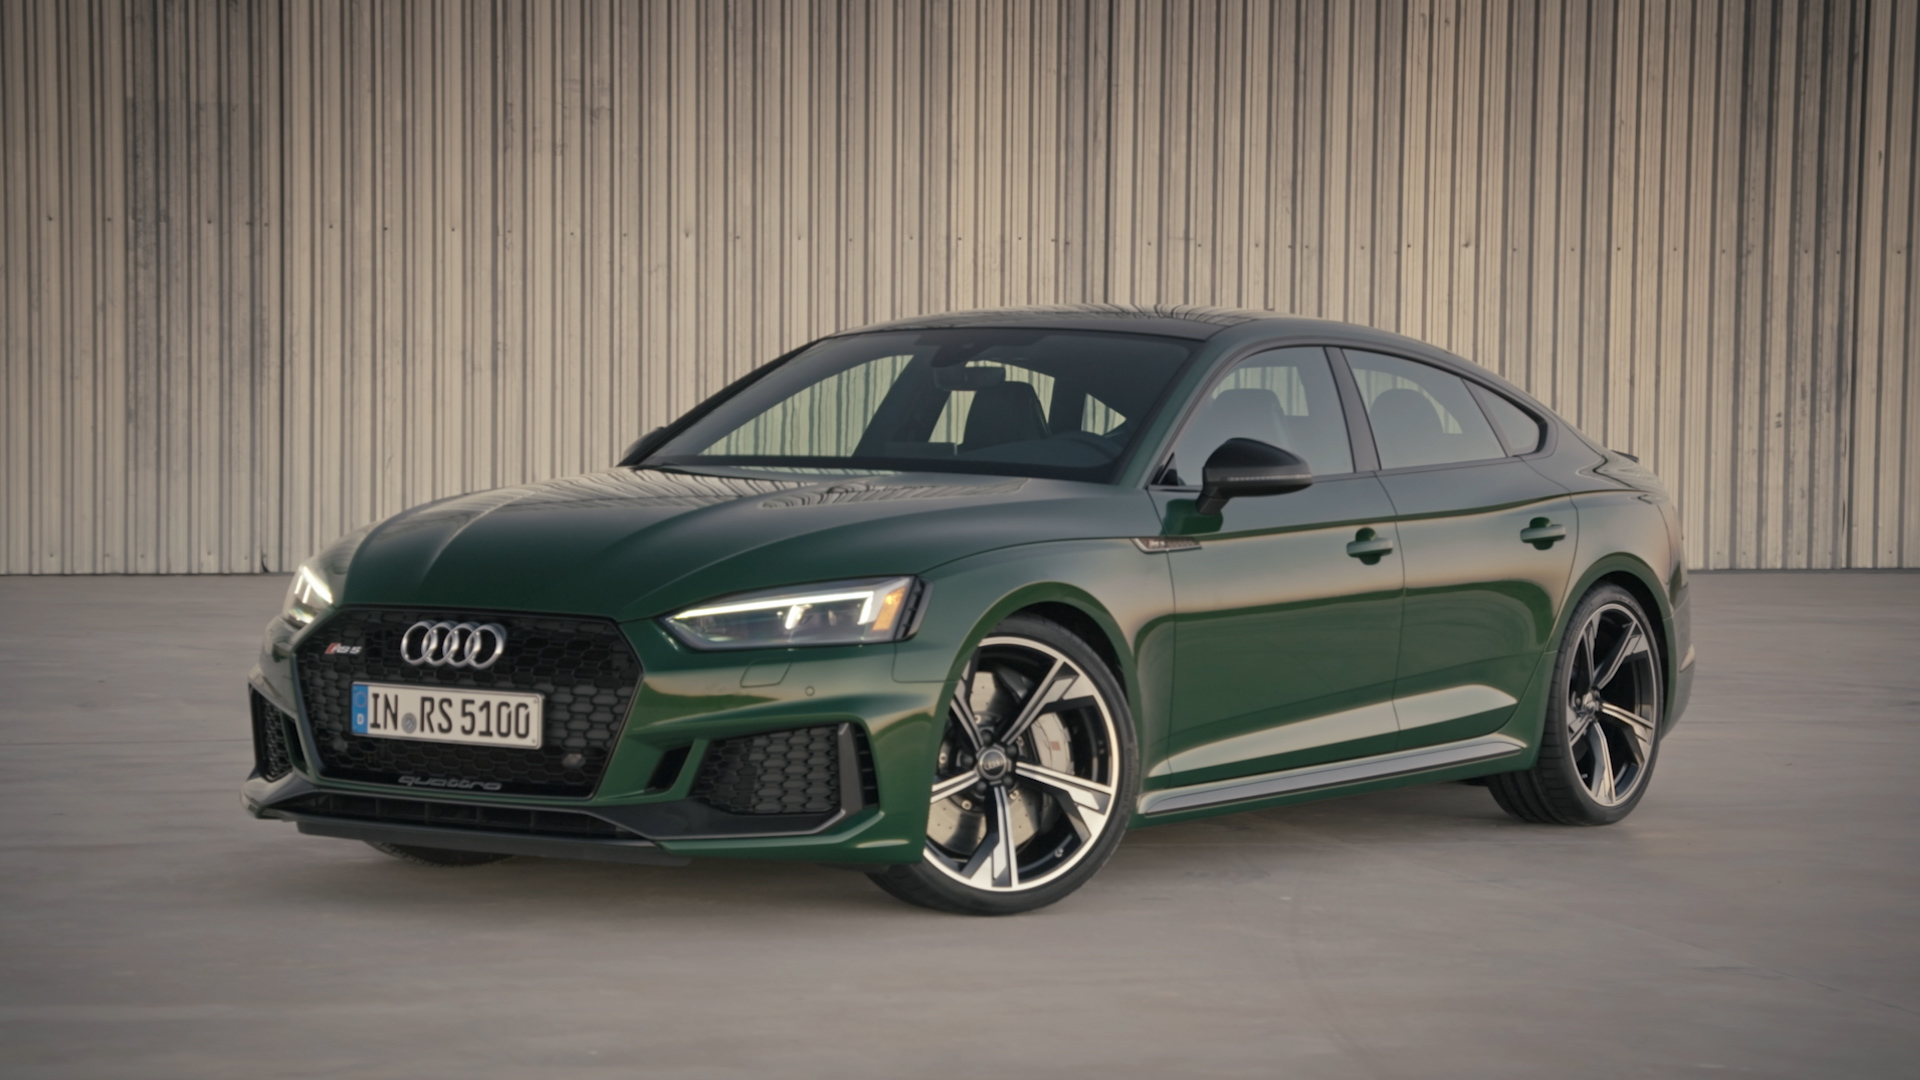 Optimum performance: the new Audi RS 5 Sportback